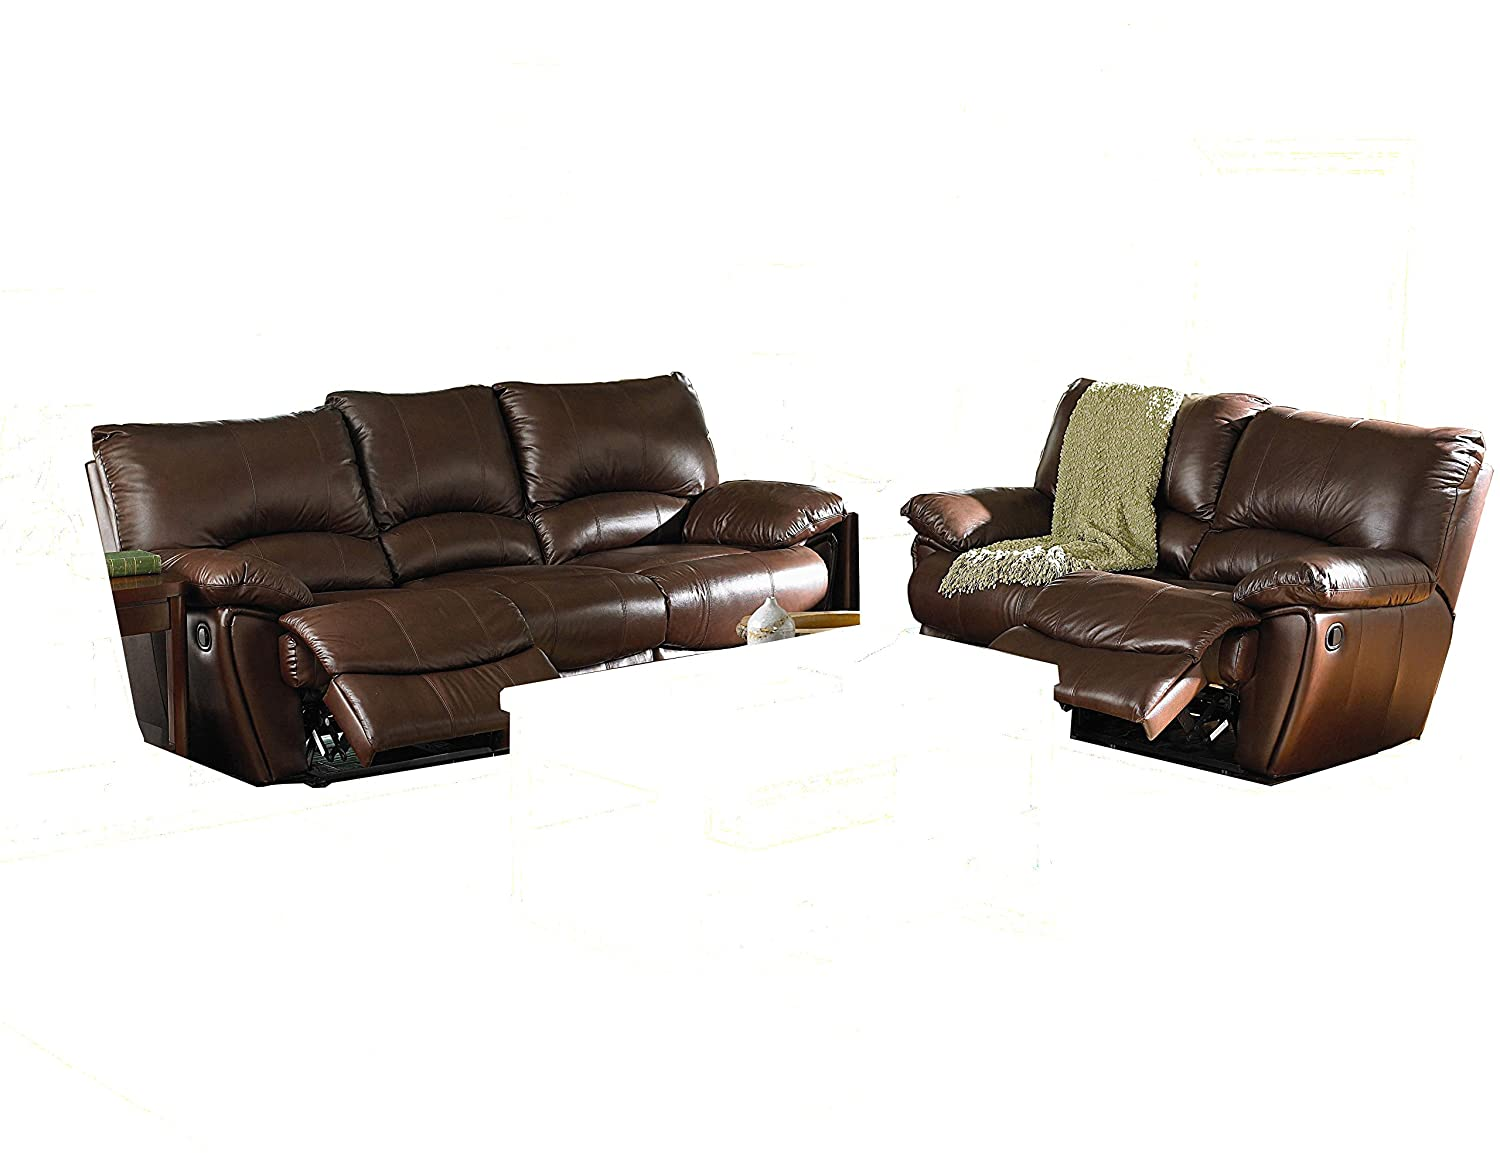 Clifford Double Reclining 2 Piece Sofa Set